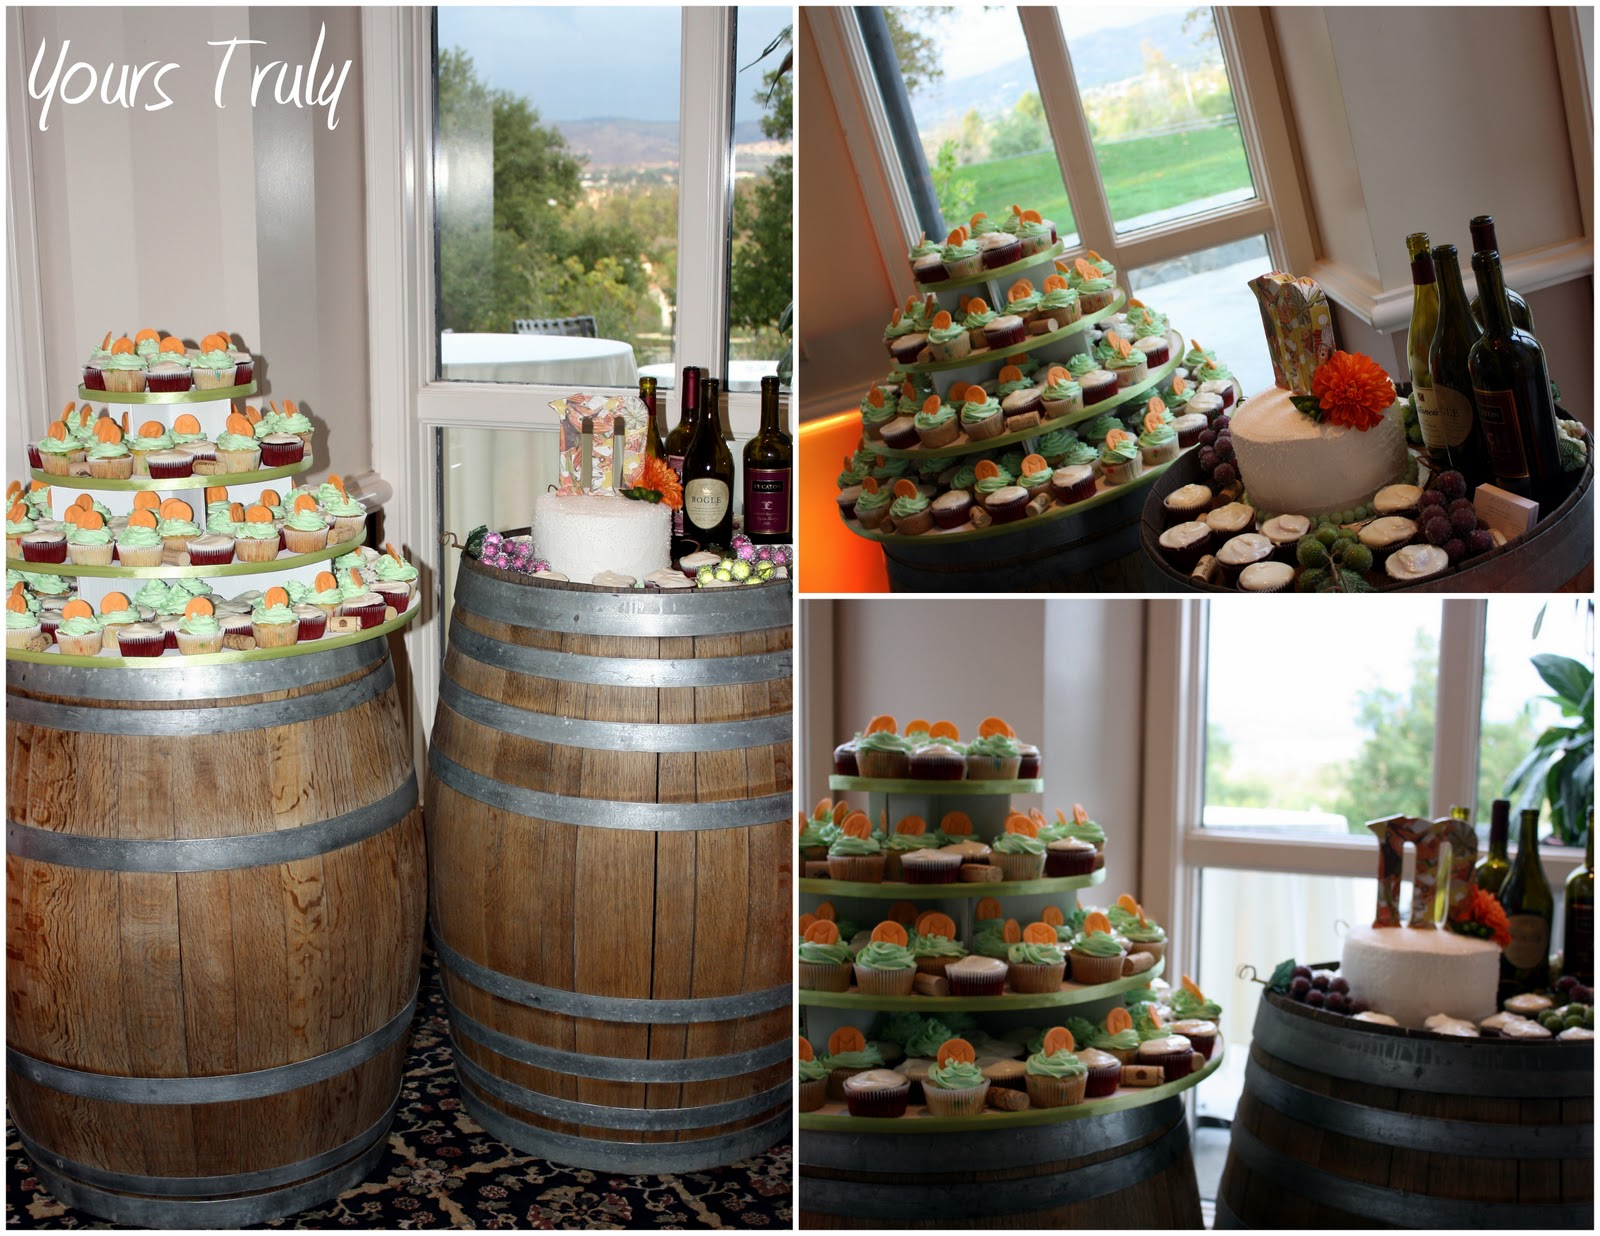 Yours Truly Wedding And Event Design Mittskus Wine Themed Cupcake